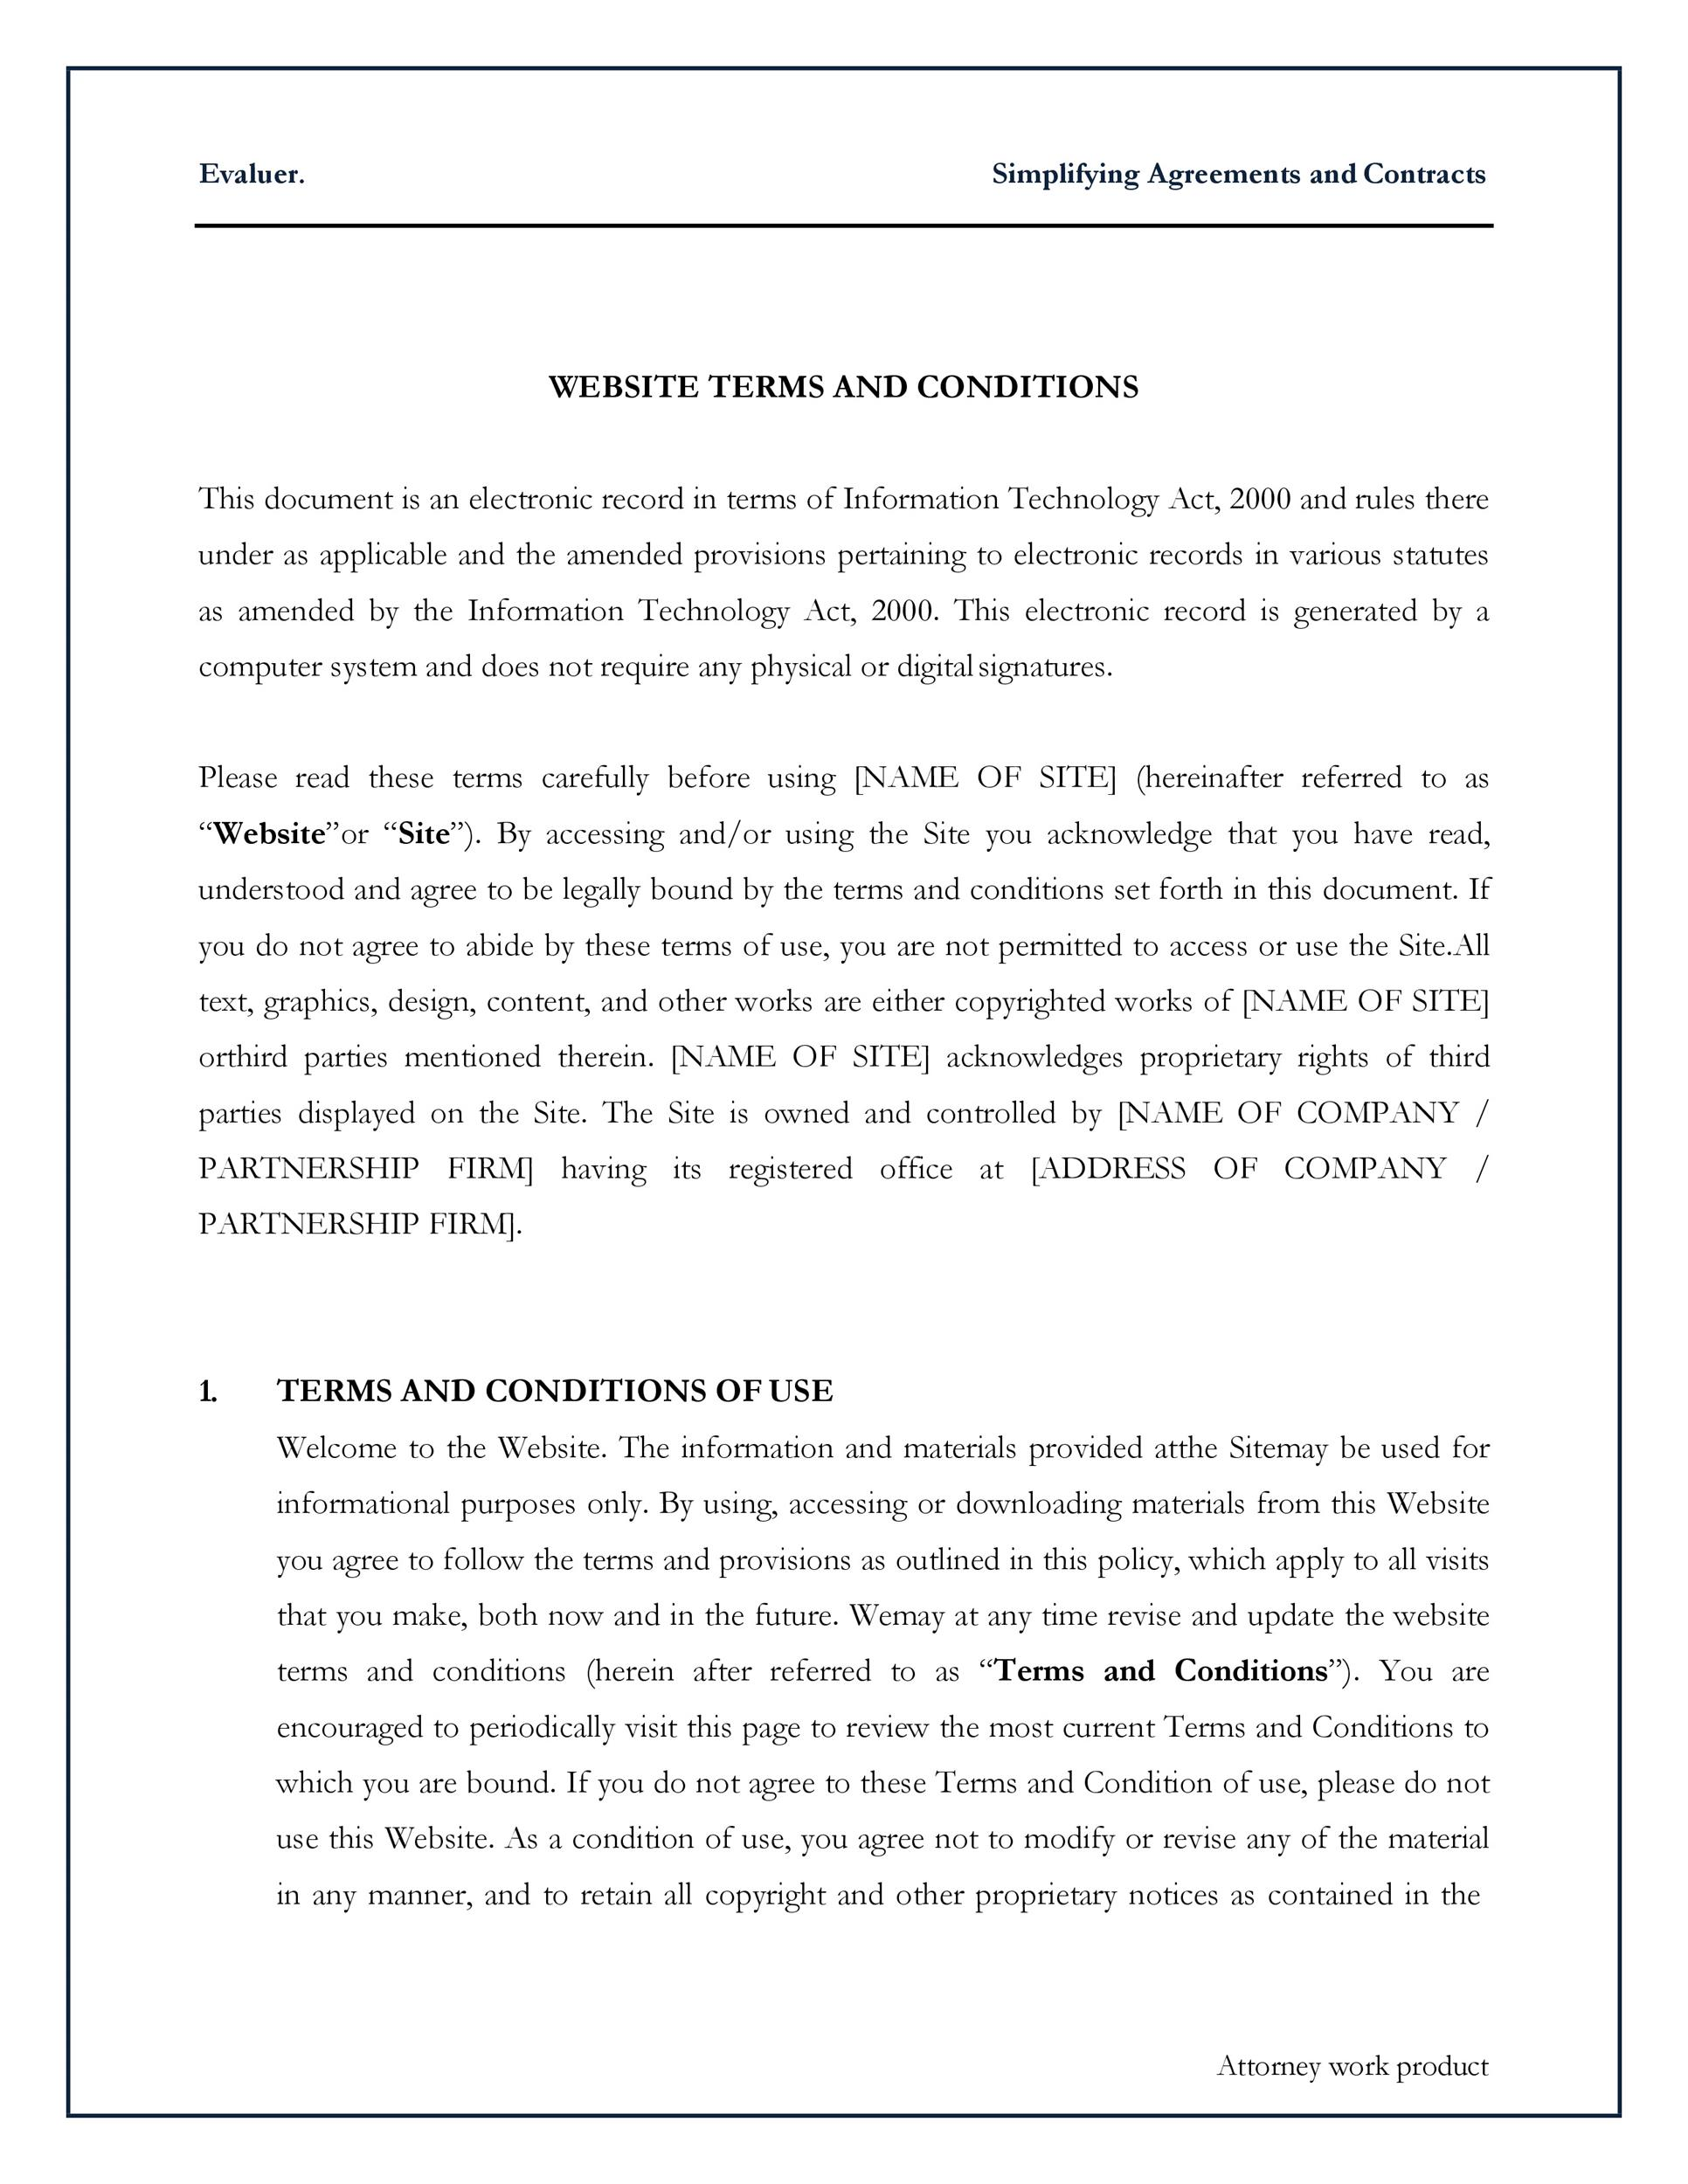 Free terms and conditions template 30